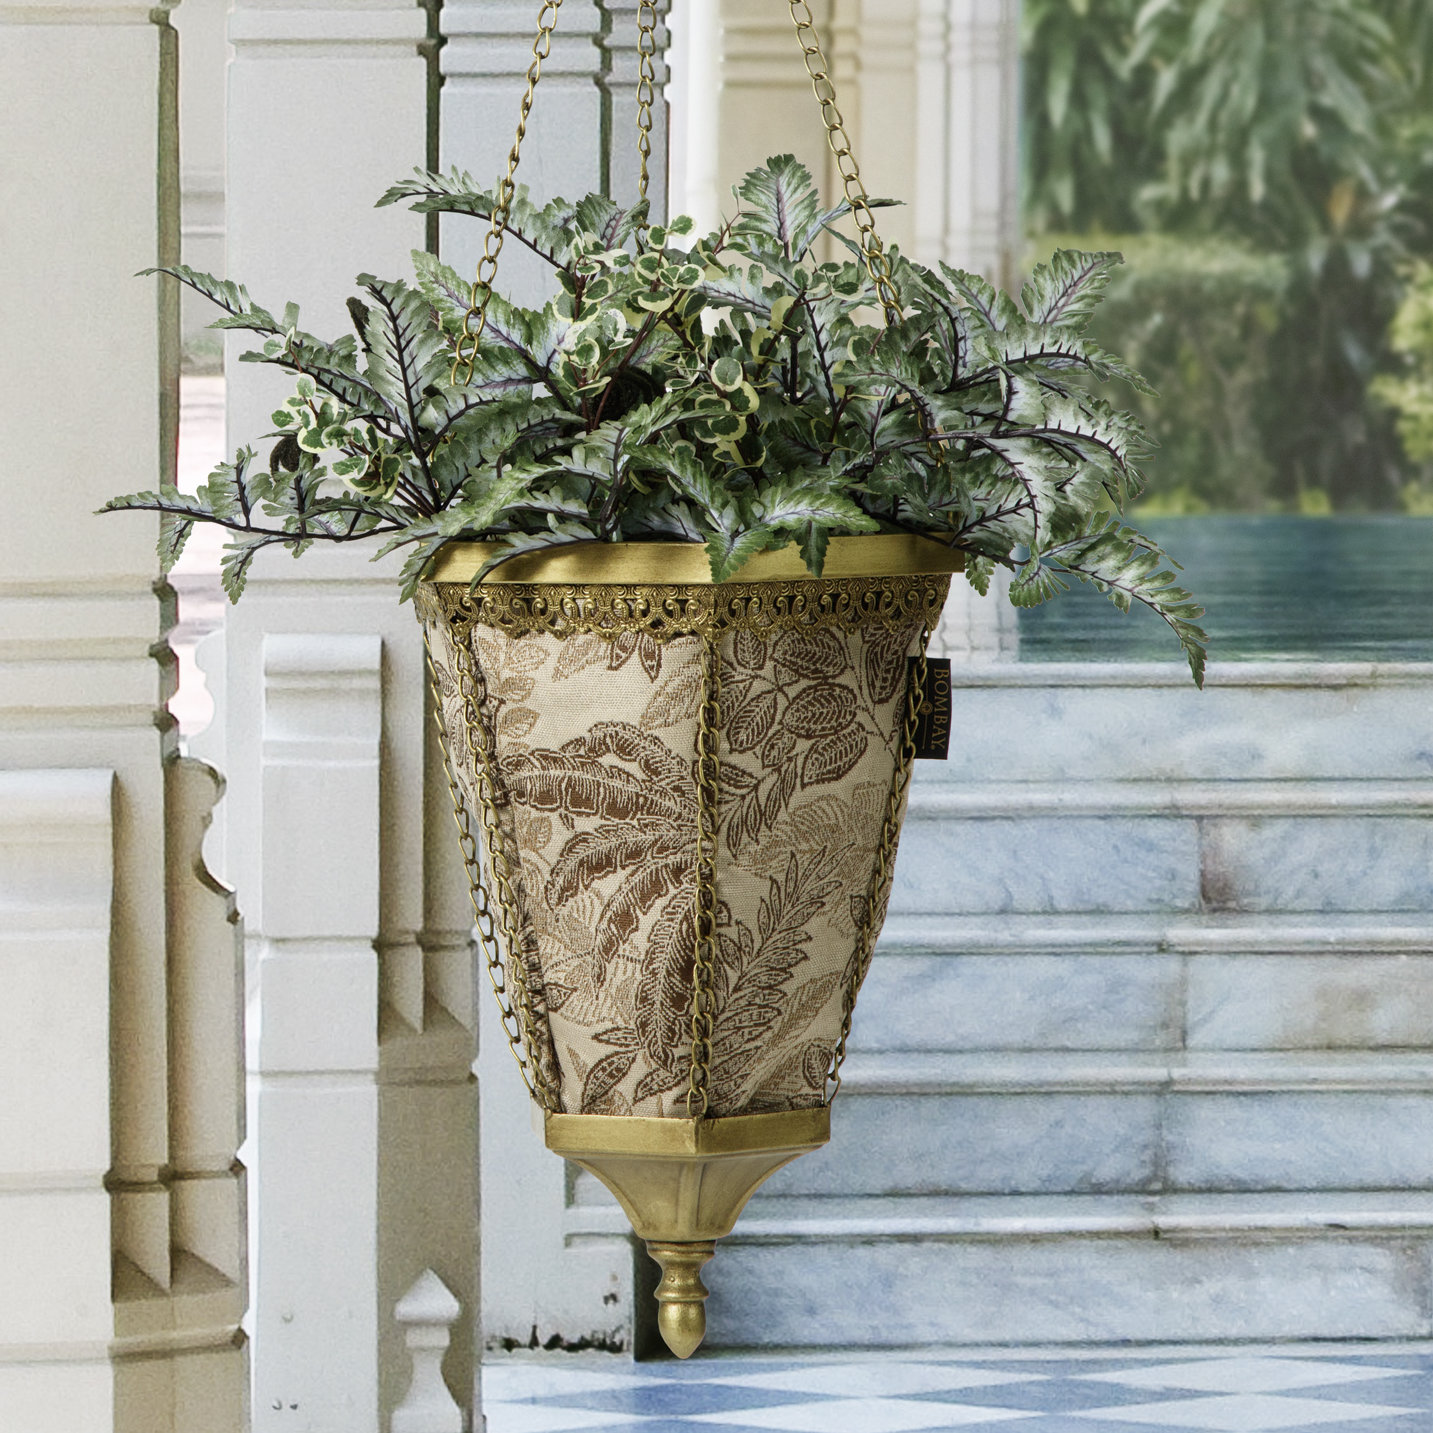 bombayoutdoors palmetto steel hanging planter bombay outdoors pineapple umbrella accent table red runner and placemats furniture world round cloths trestle bench legs dark marble